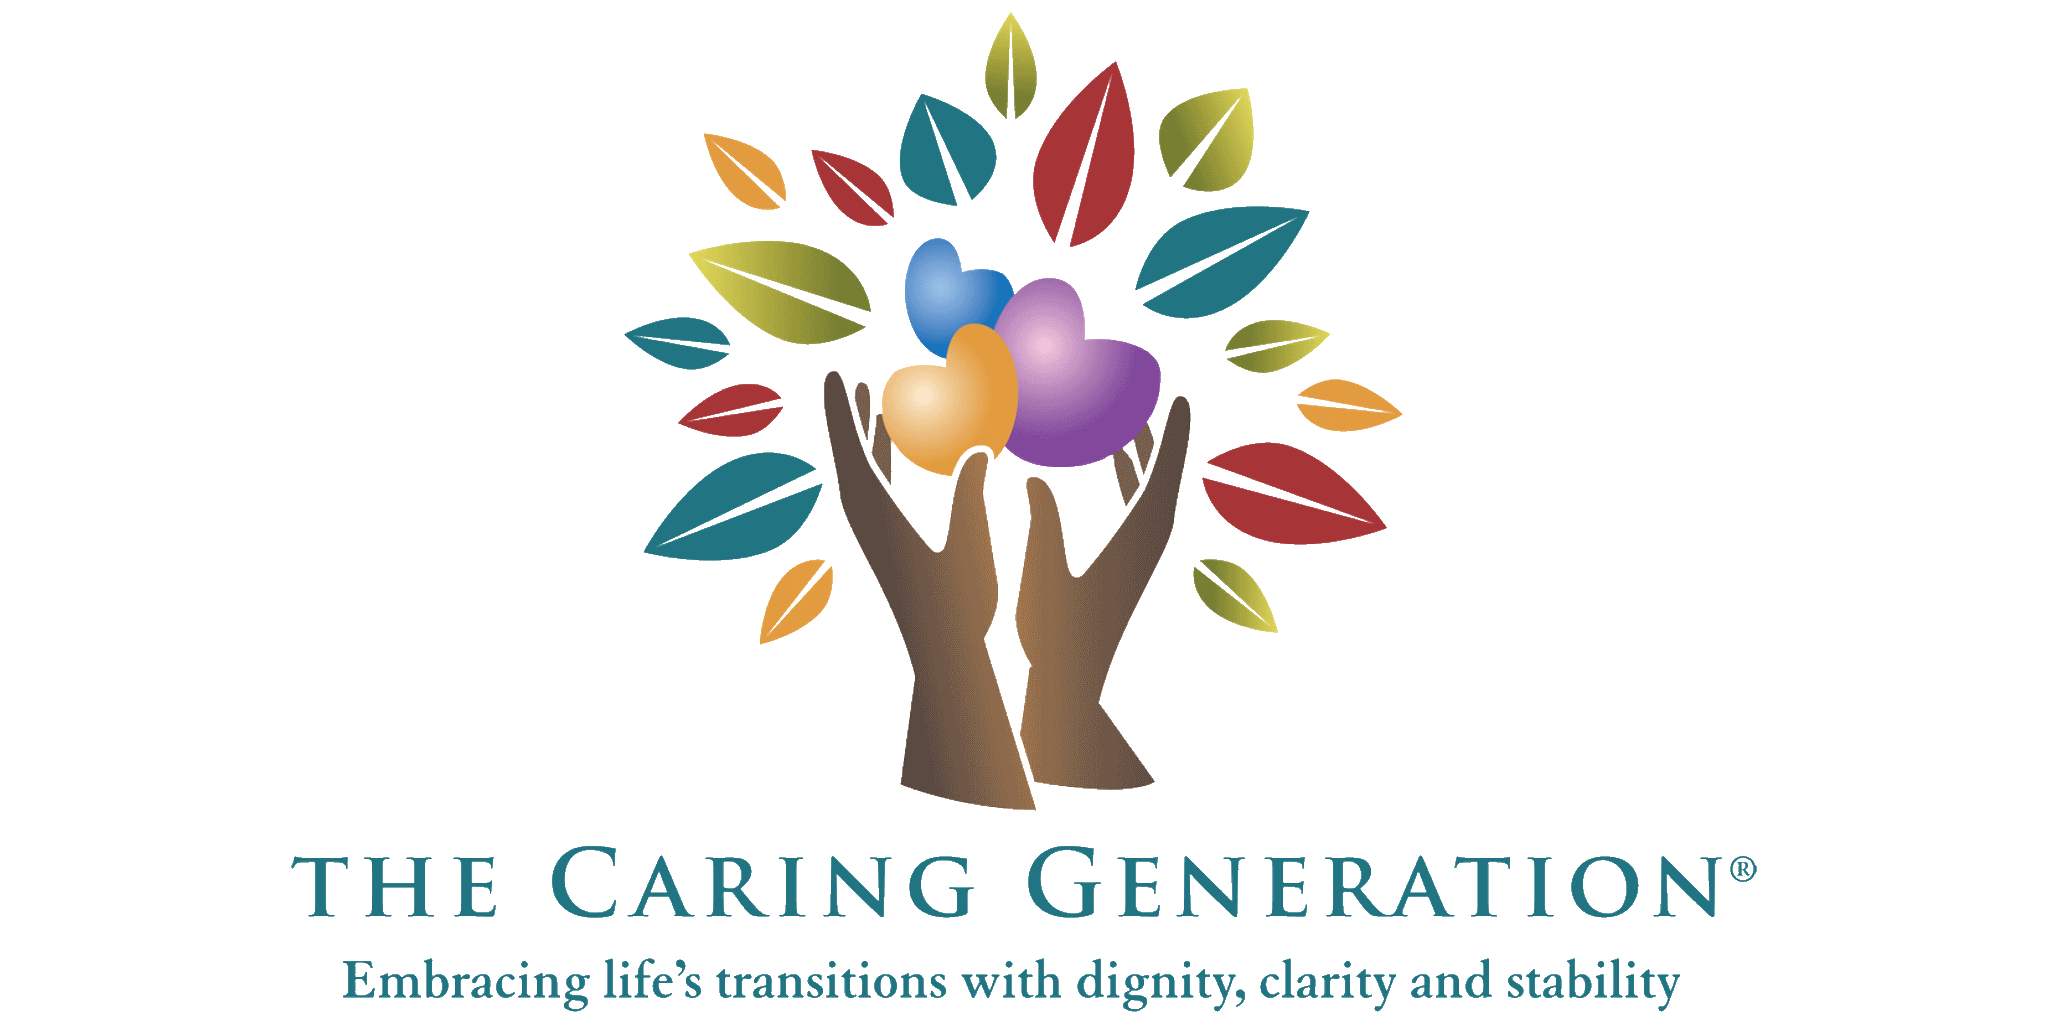 The Caring Generation